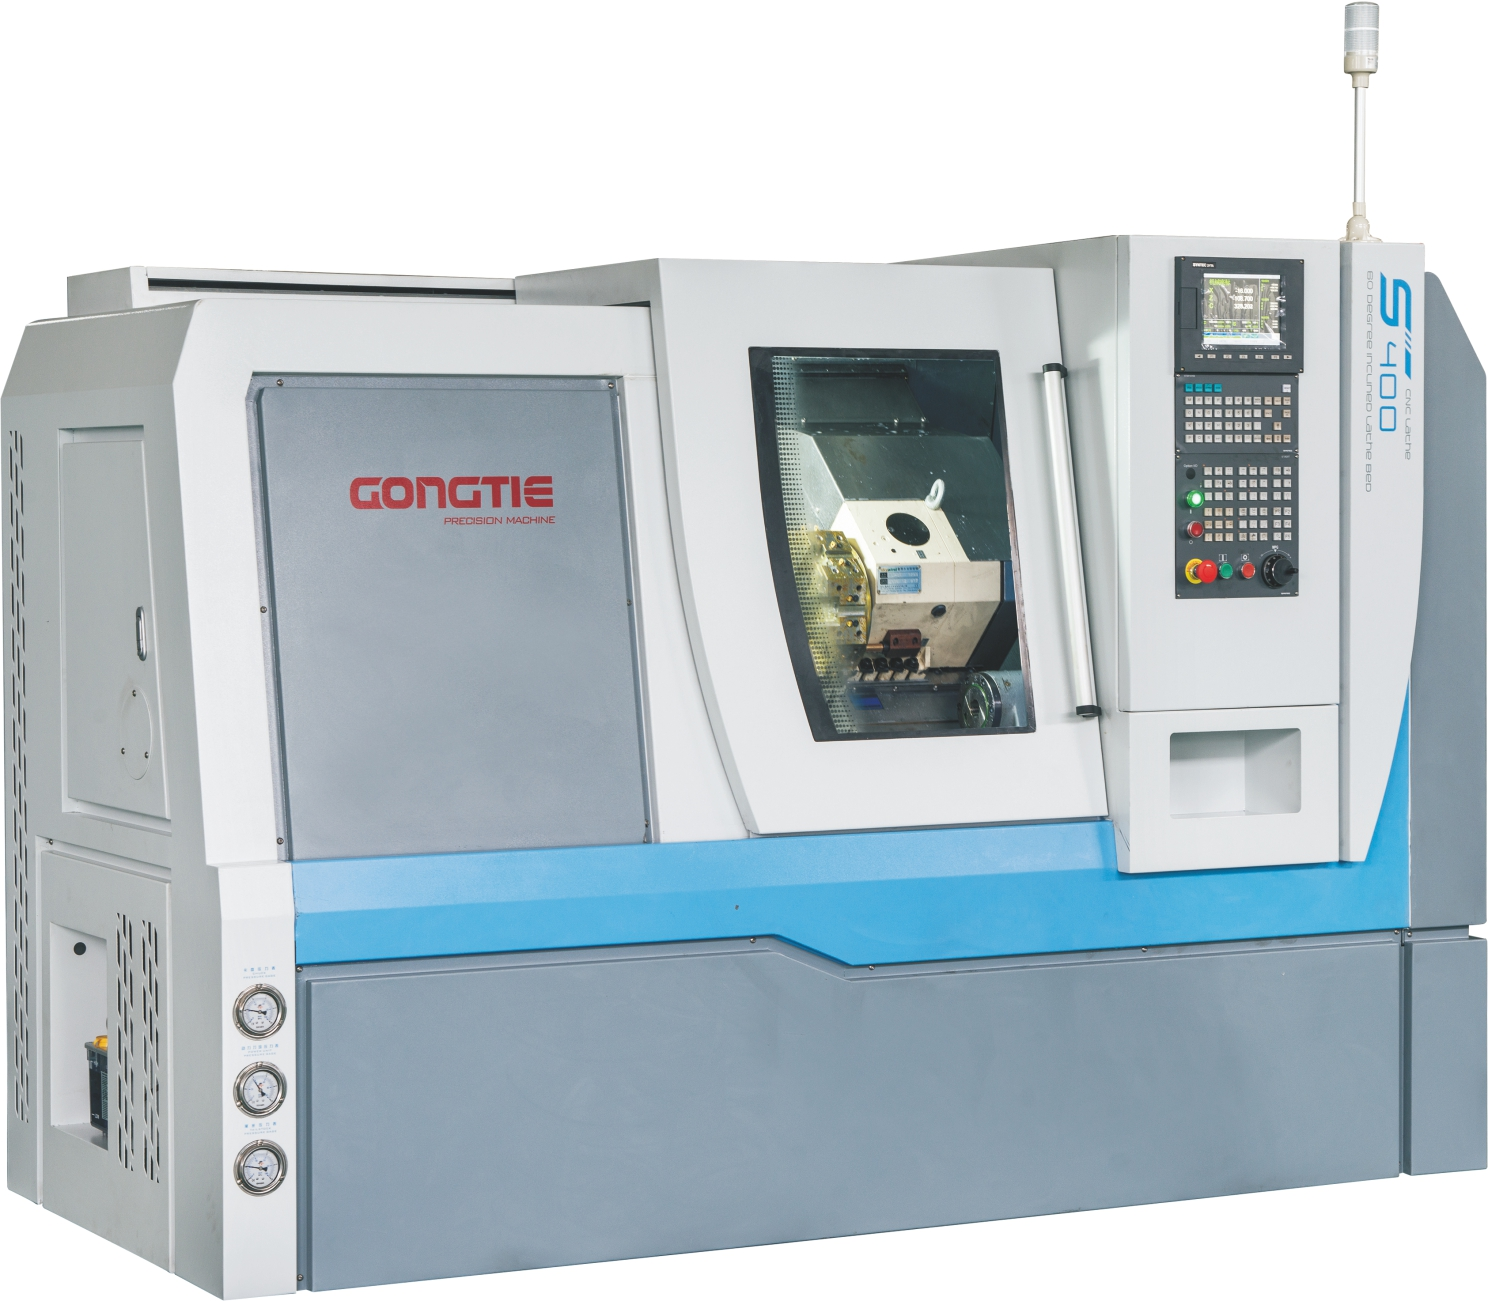 GP500/GP550 SERIES CNC LATHE WITH SLANT BED IN TURRET